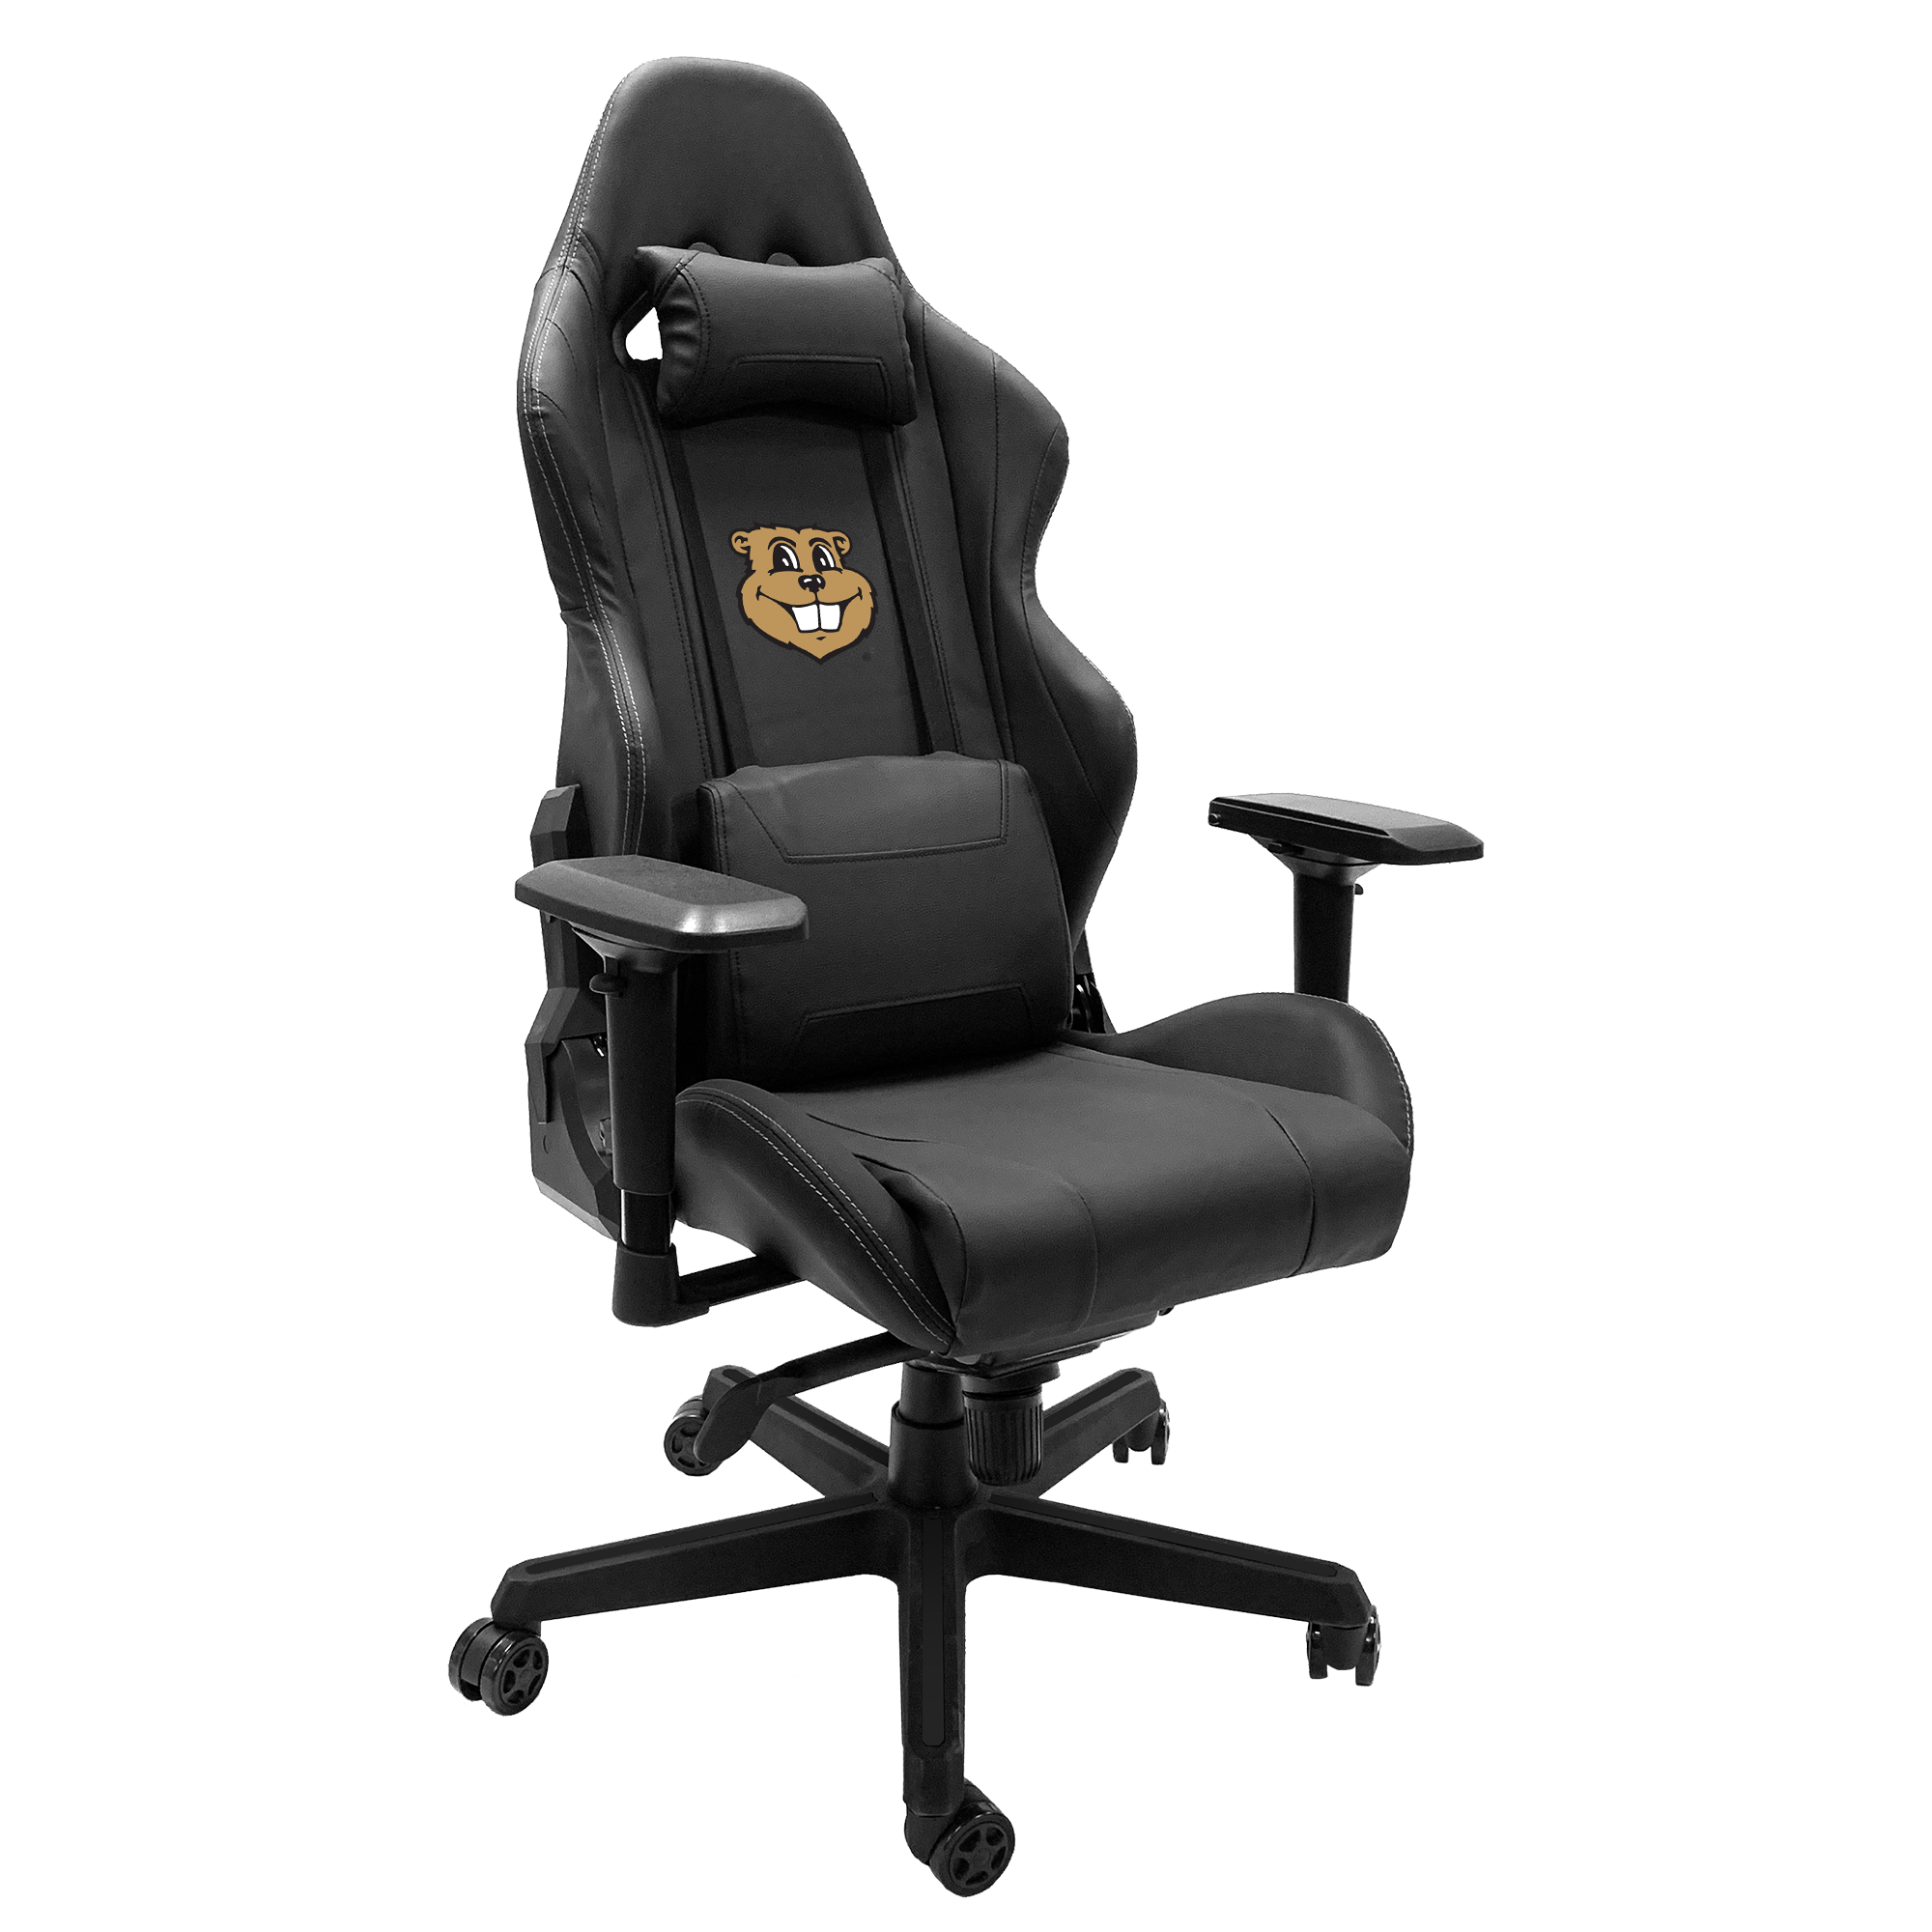 Xpression Gaming Chair with University of Minnesota Alternate Logo